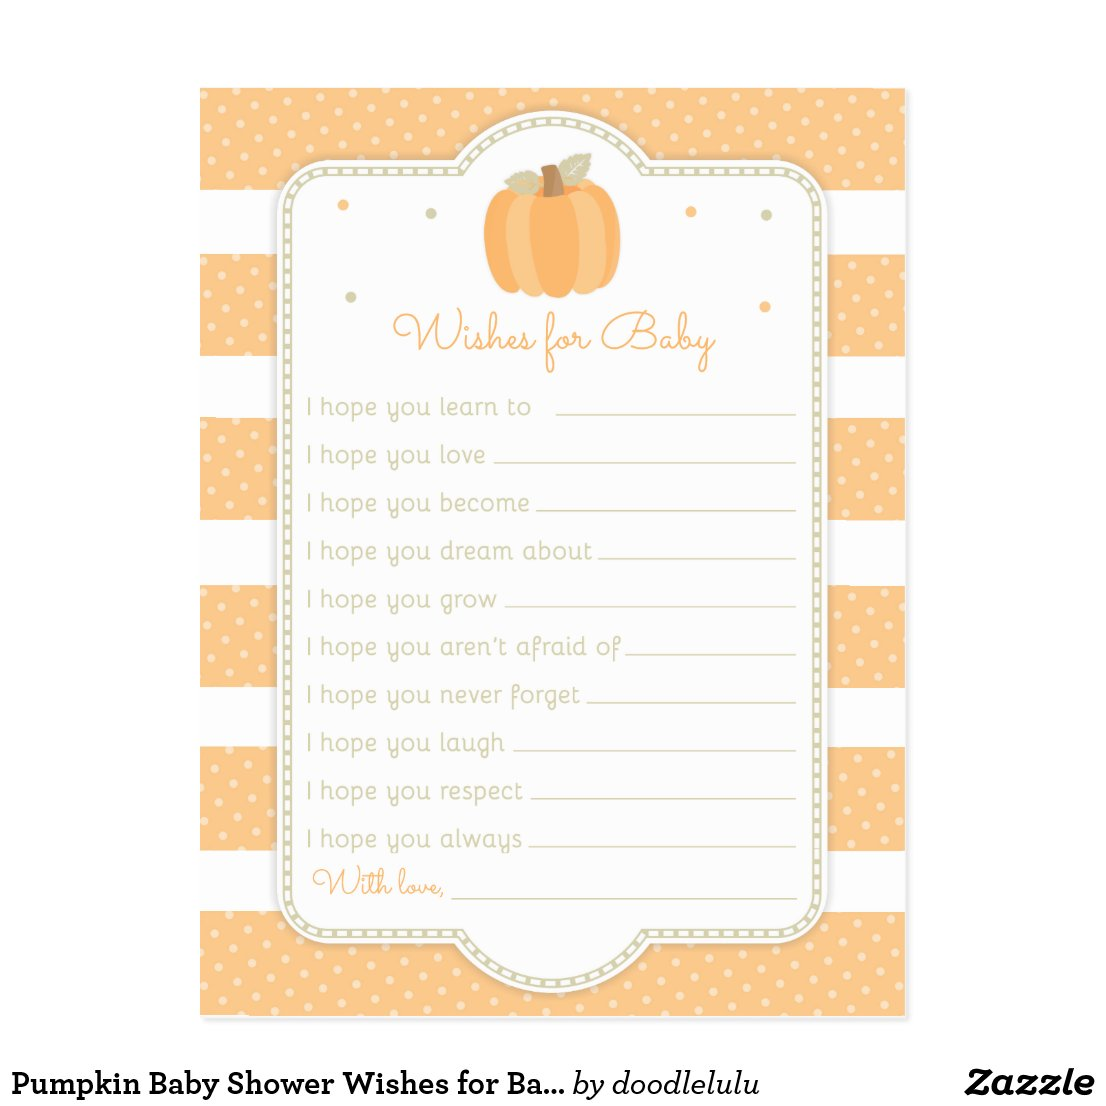 Pumpkin Baby Shower Wishes for Baby Postcard